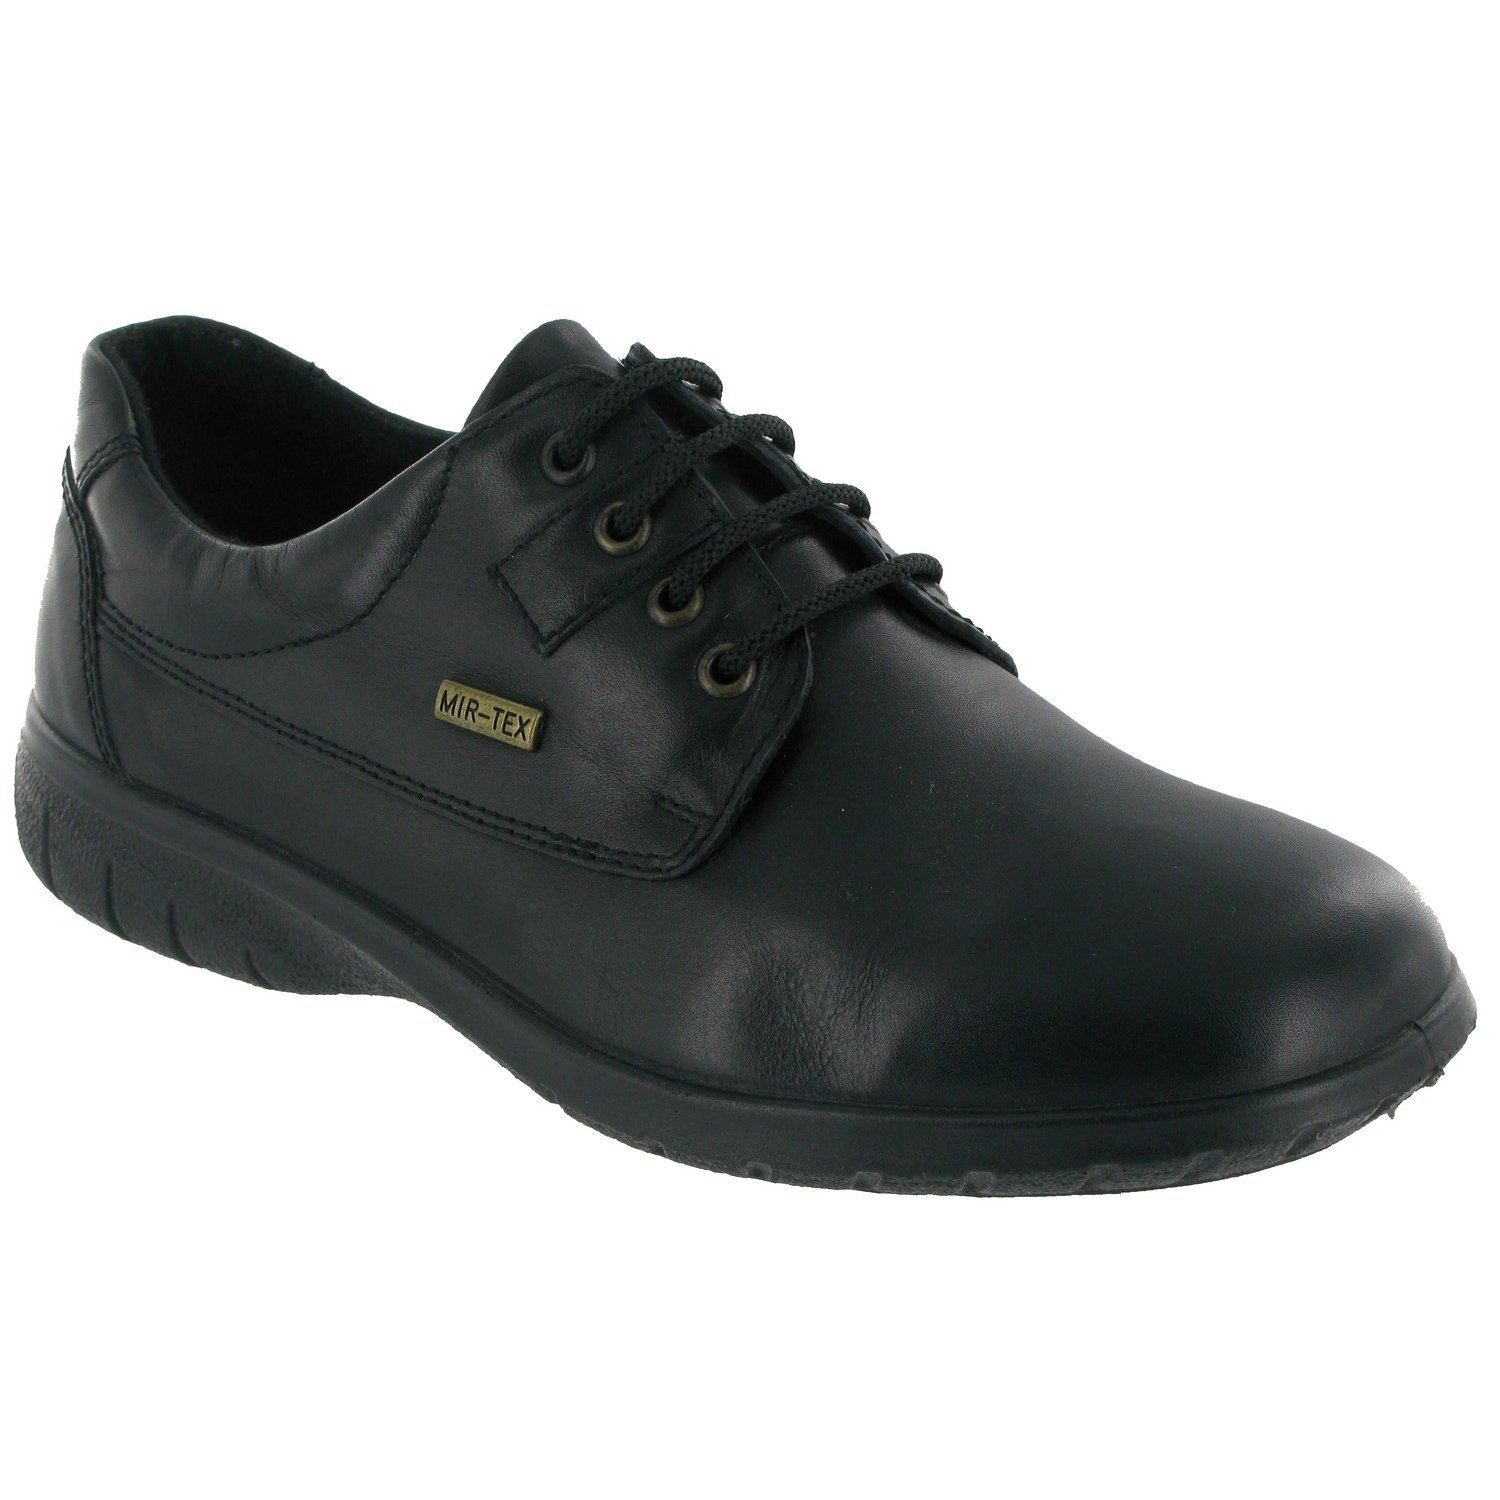 Cotswold Ladies Ruscombe Black Waterproof Leather Lace up Shoe